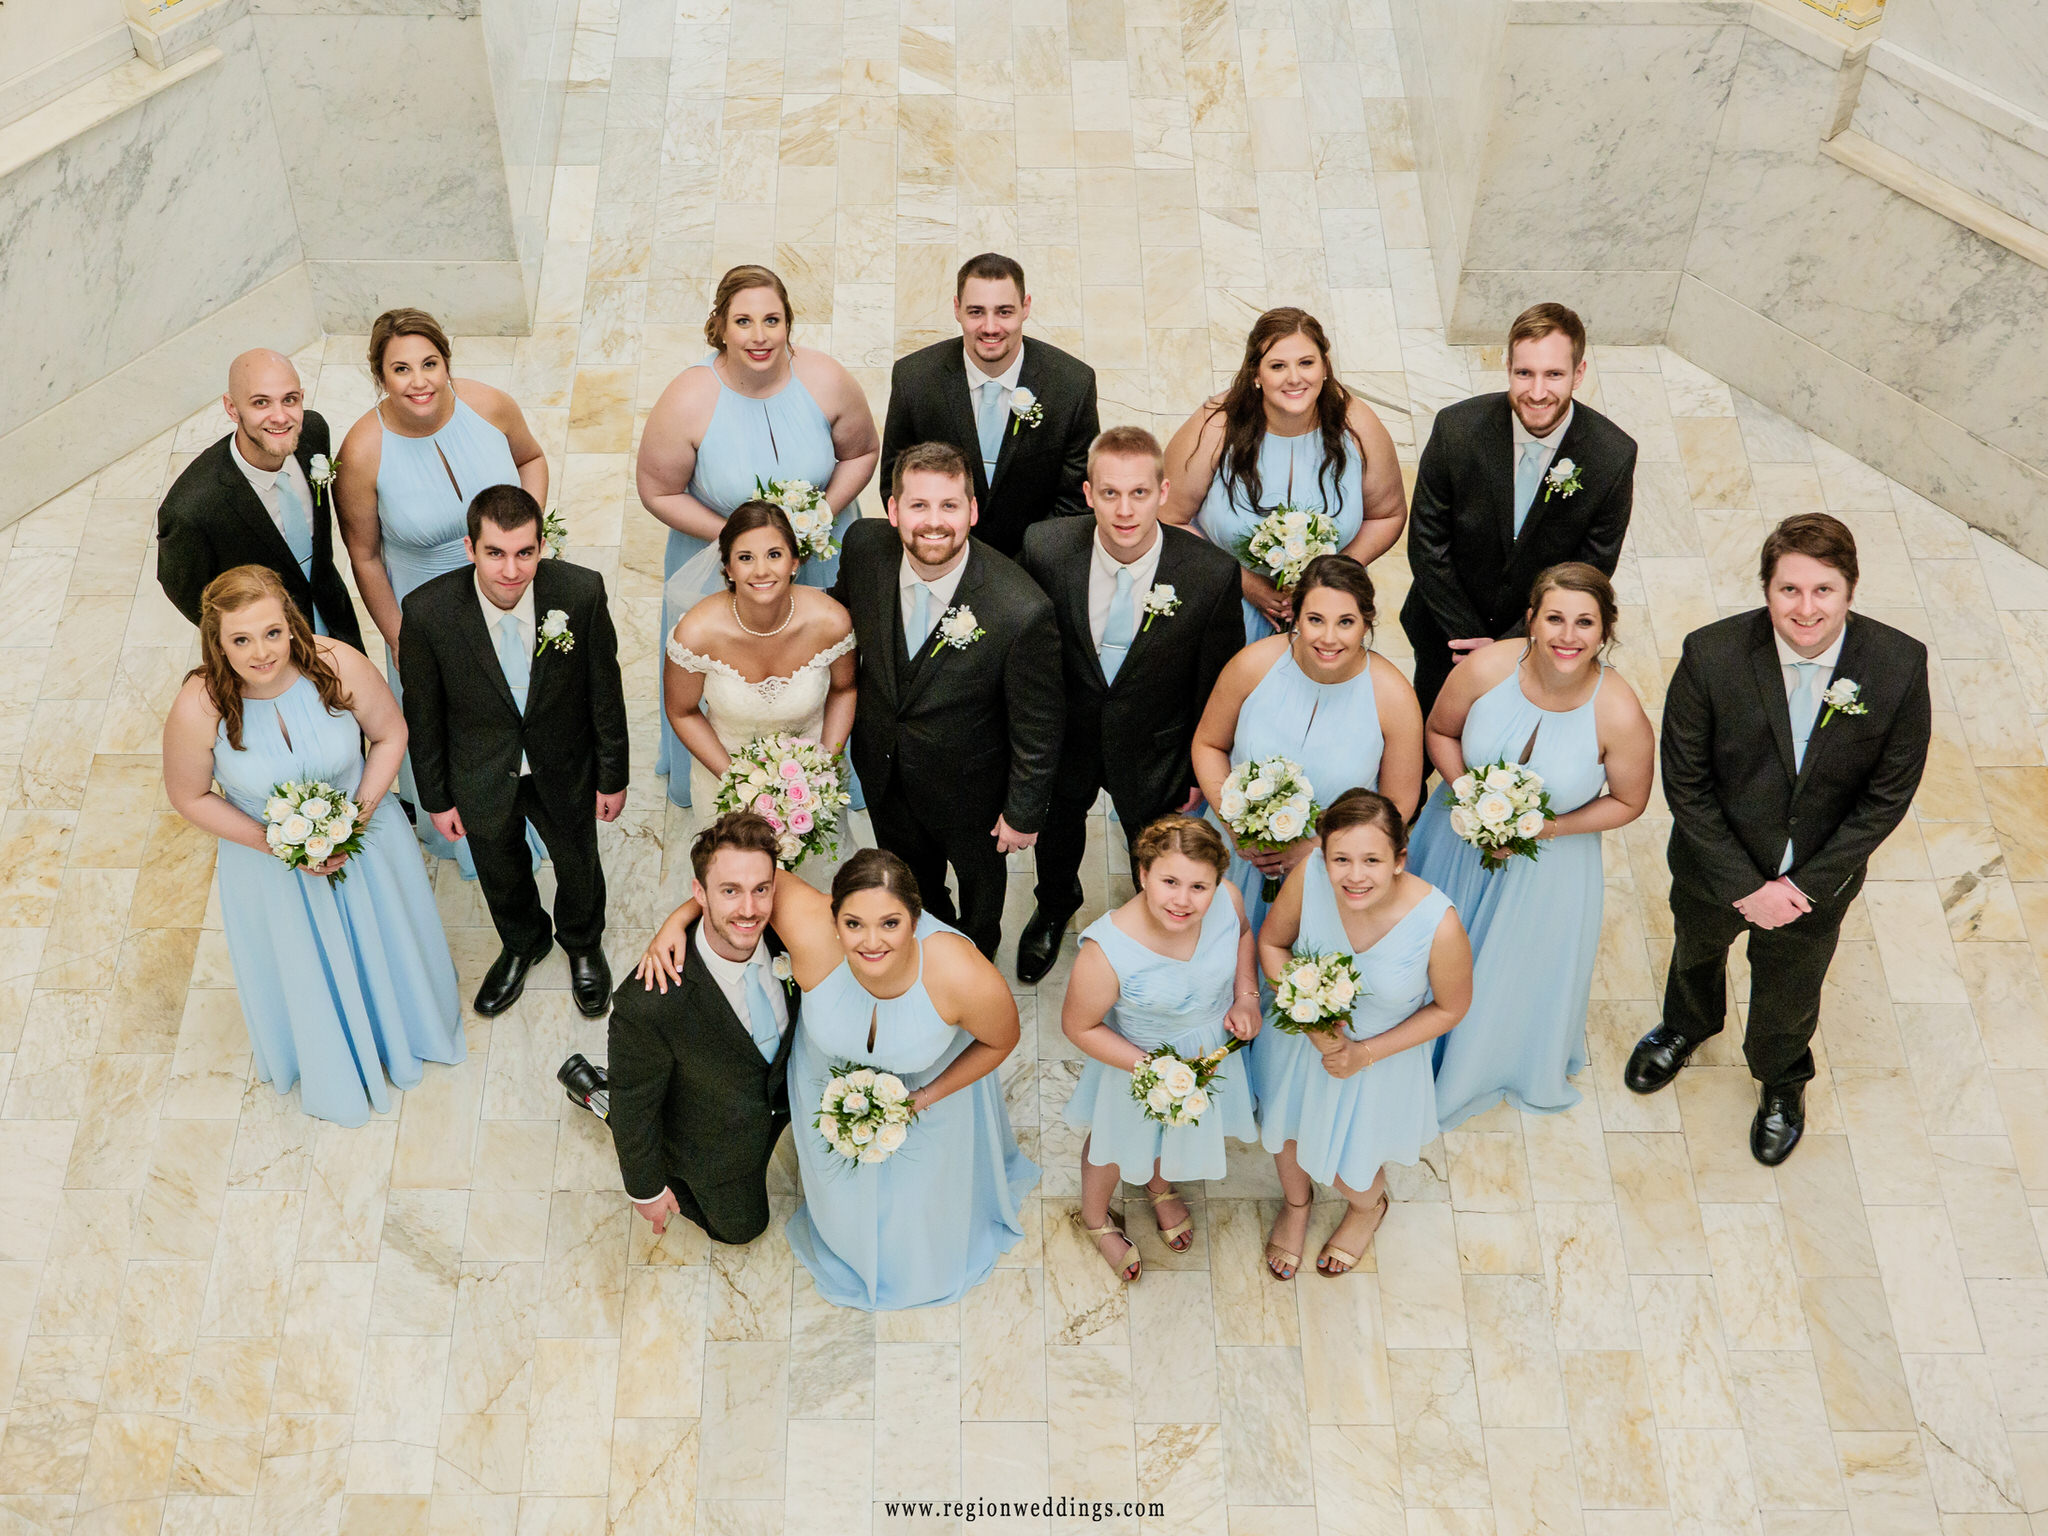 Wedding party group photo on the marble floor of Old Crown Point Courthouse.